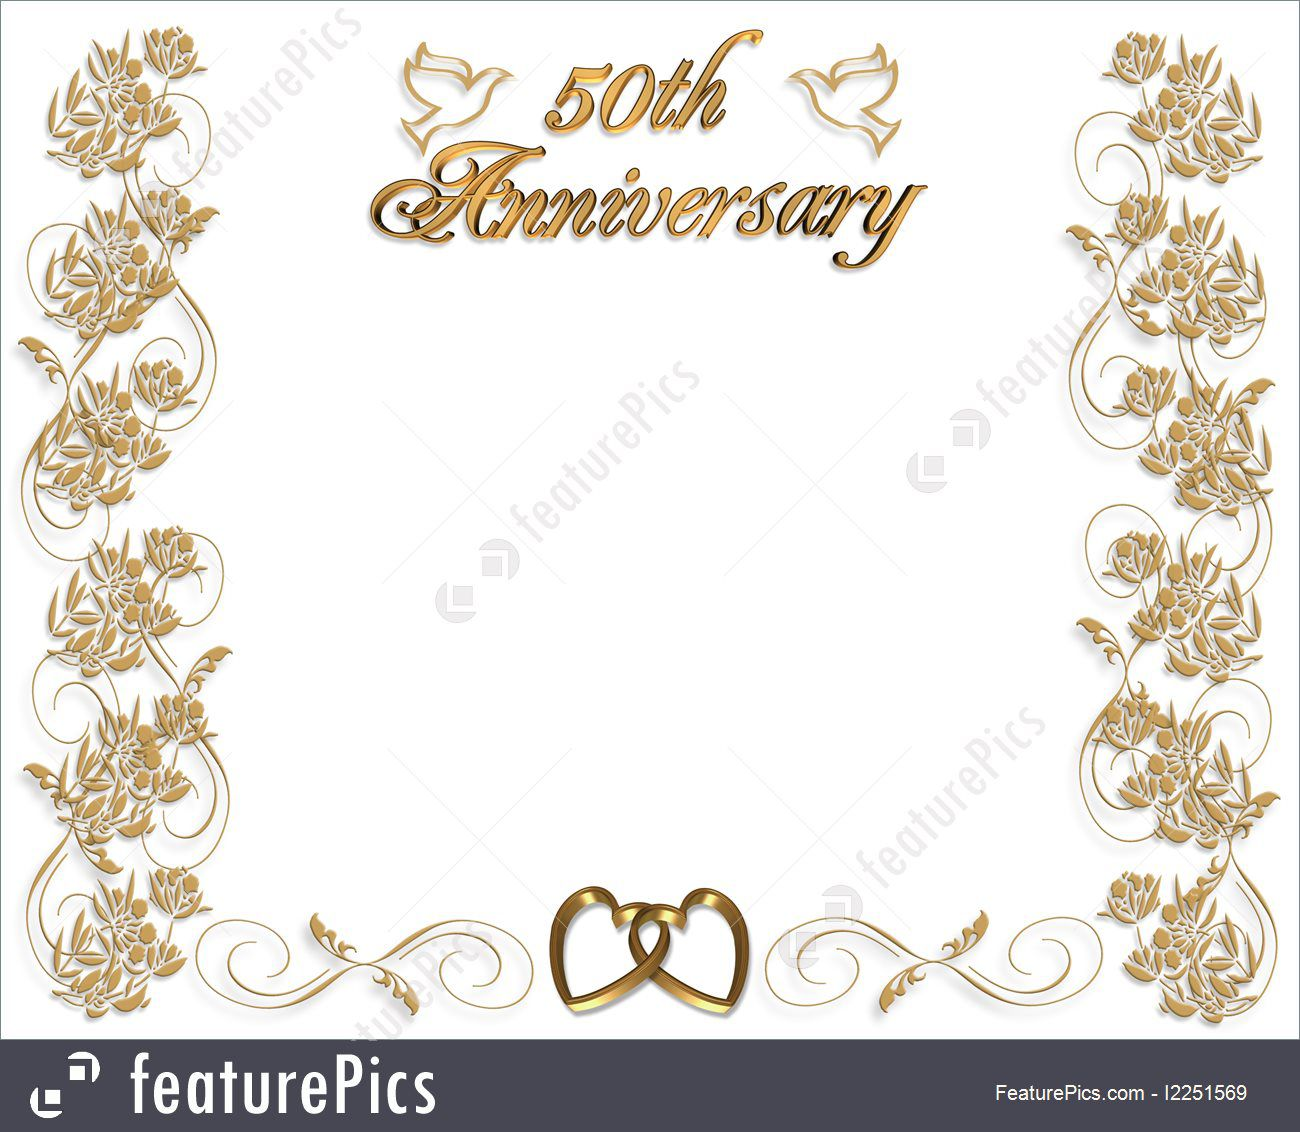 008 Marvelou 50th Wedding Anniversary Invitation Sample Design  Samples Free Party Template Card IdeaFull